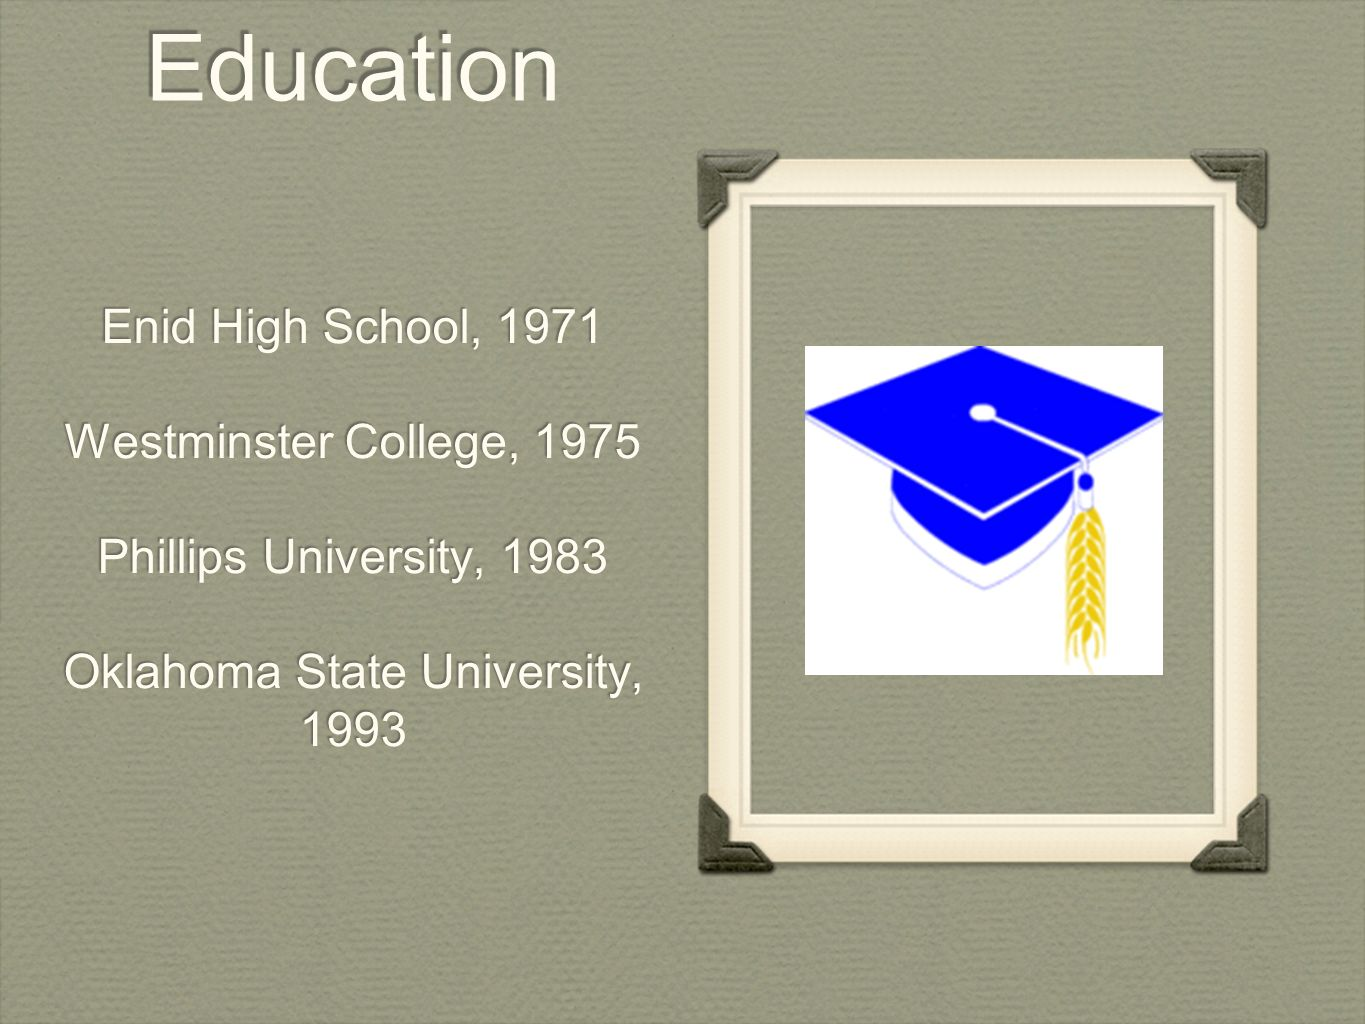 Education Enid High School, 1971 Westminster College, 1975 Phillips University, 1983 Oklahoma State University, 1993 Enid High School, 1971 Westminster College, 1975 Phillips University, 1983 Oklahoma State University, 1993